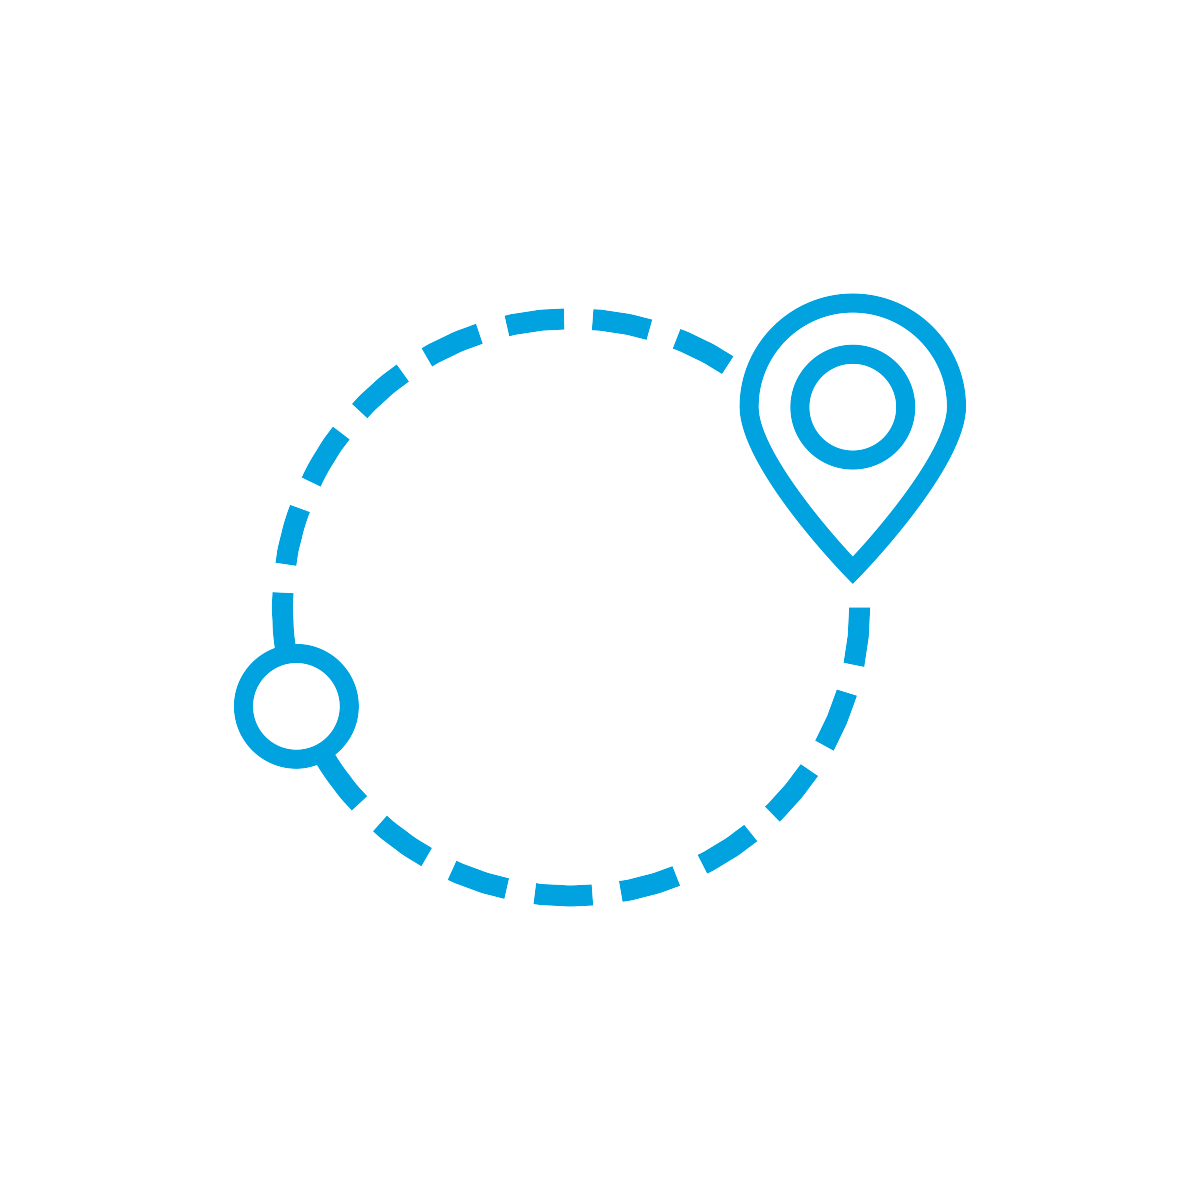 Location Symbol and Pin Connected by a Circular Dashed Line